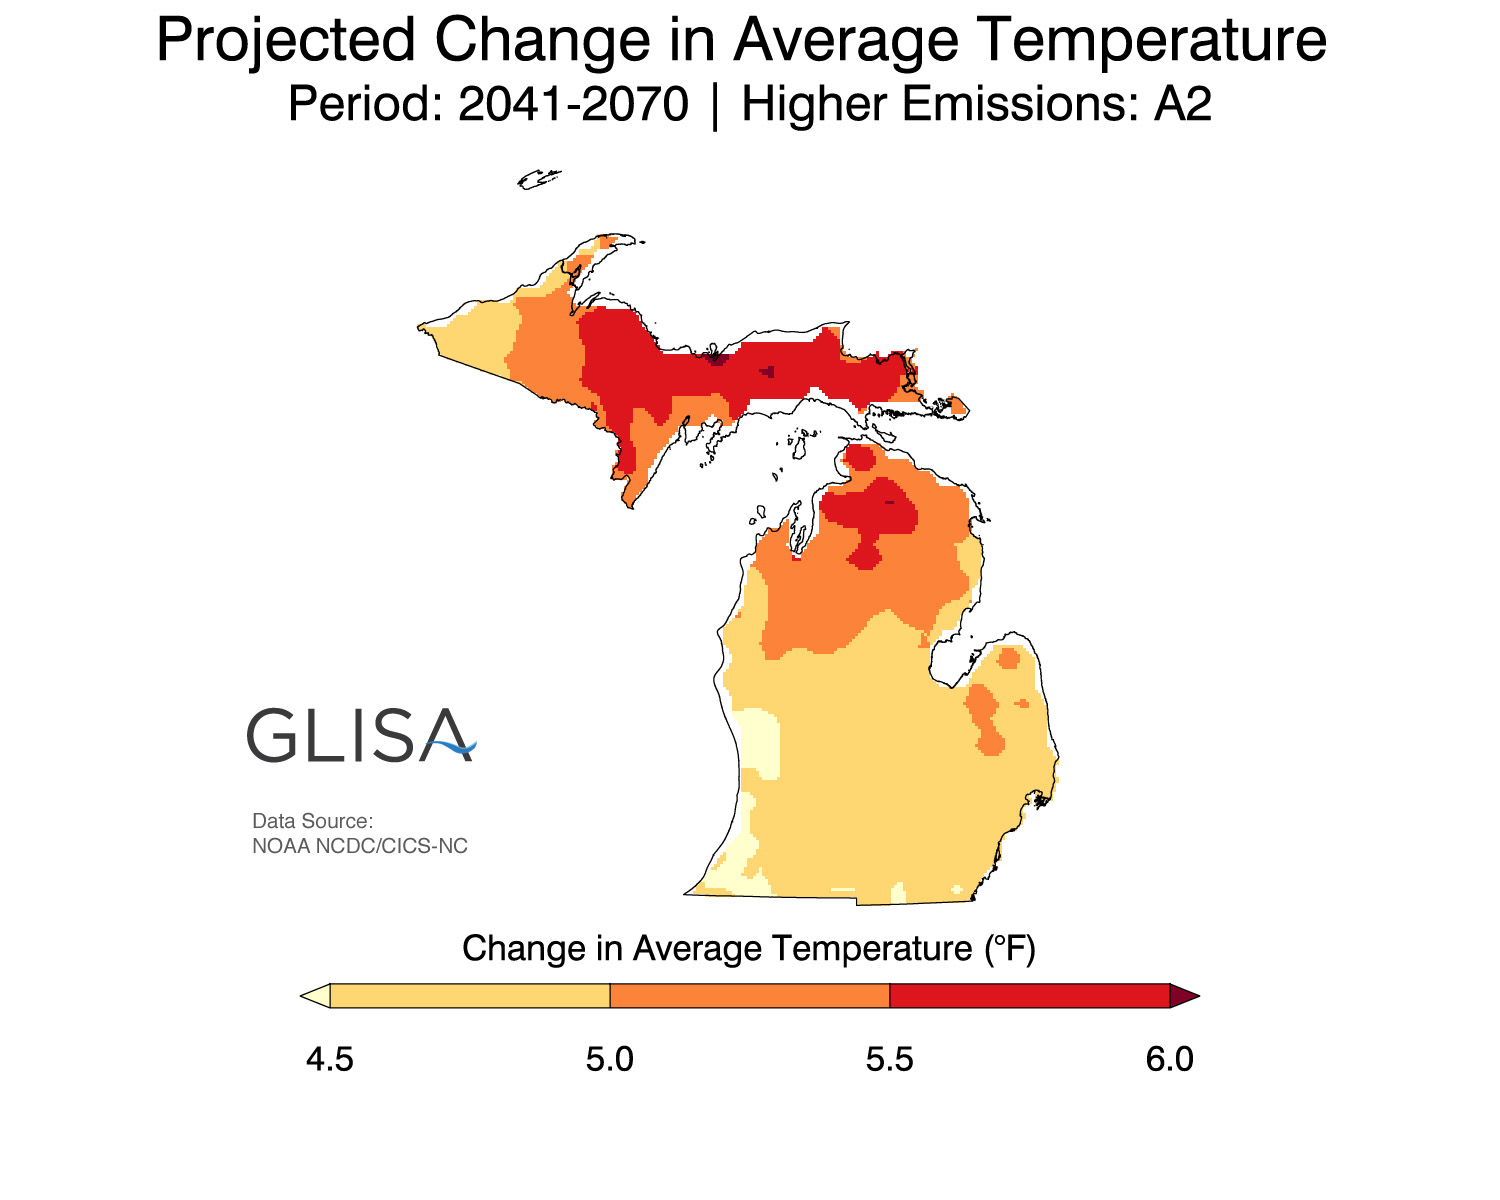 Projected change in average temperature. Image courtesy: GLISA